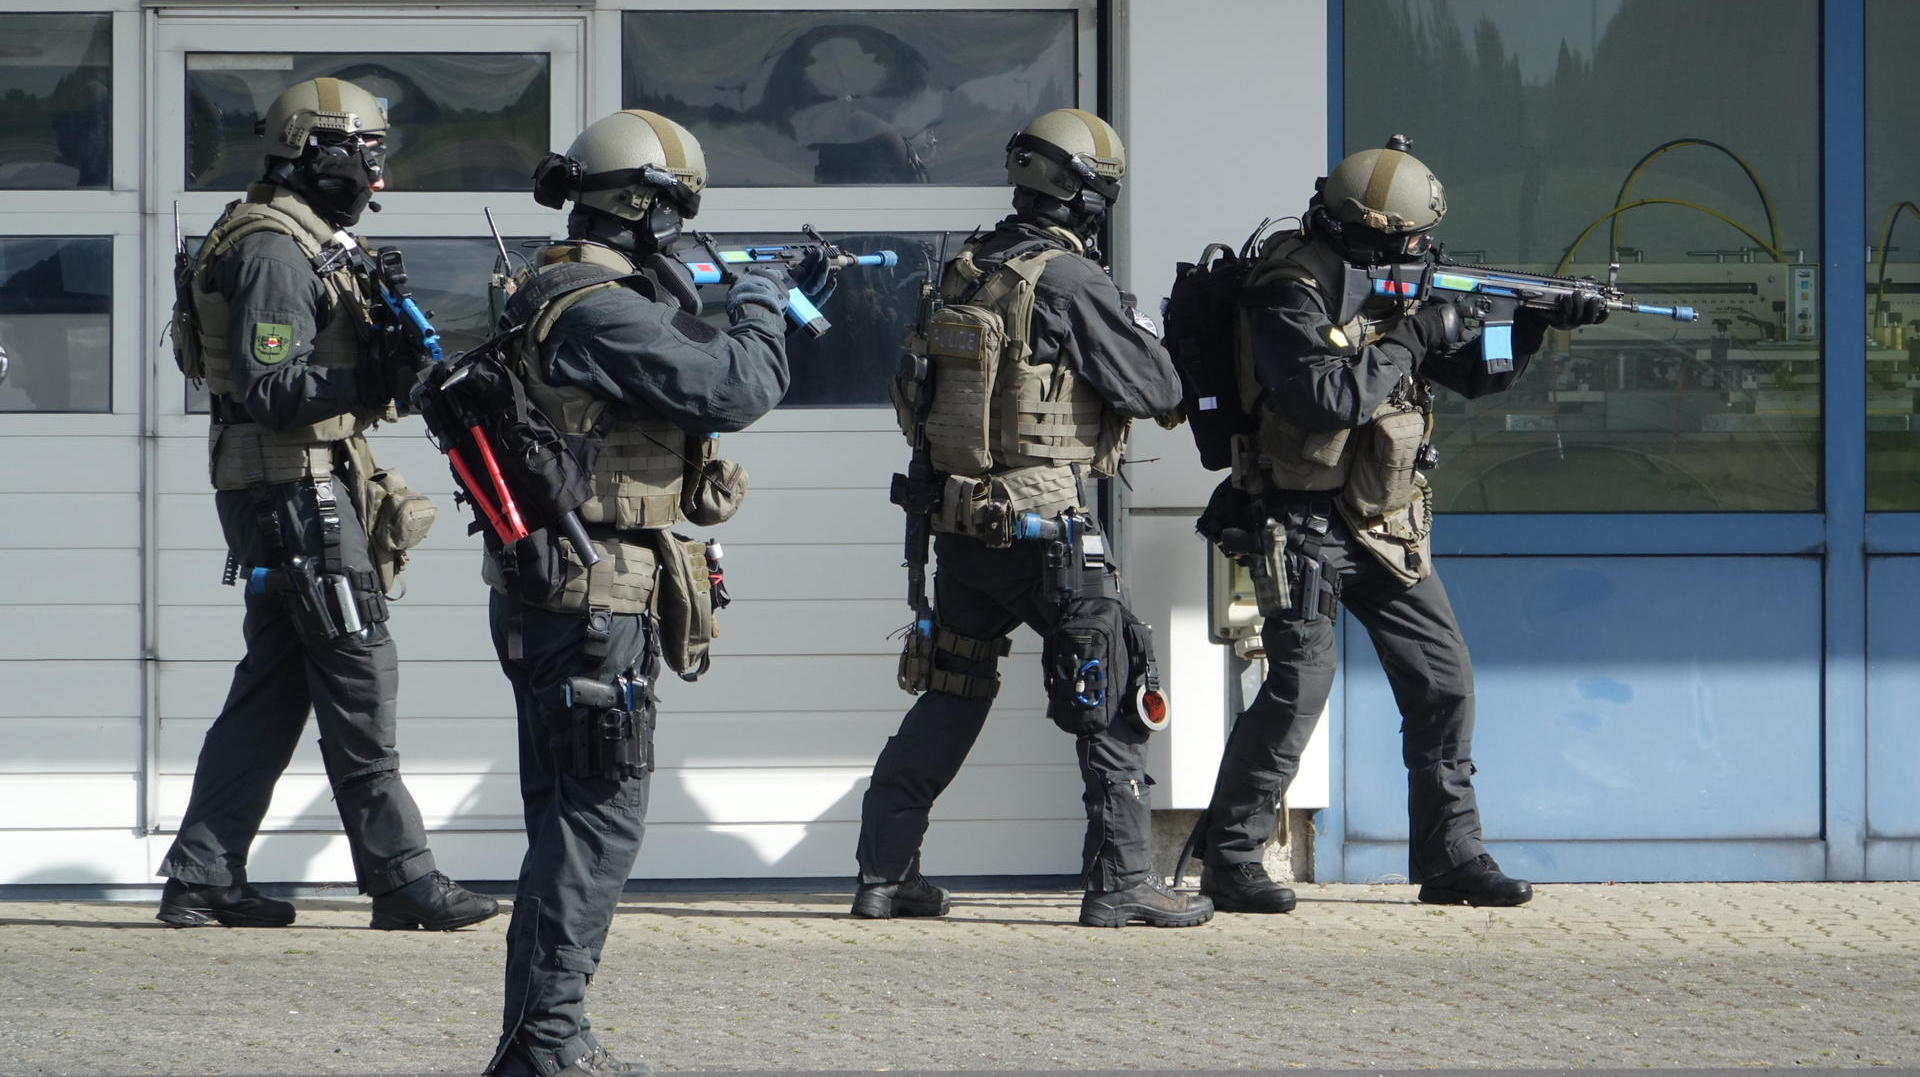 anti terror bung polizei trainiert in kiel den ernstfall. Black Bedroom Furniture Sets. Home Design Ideas